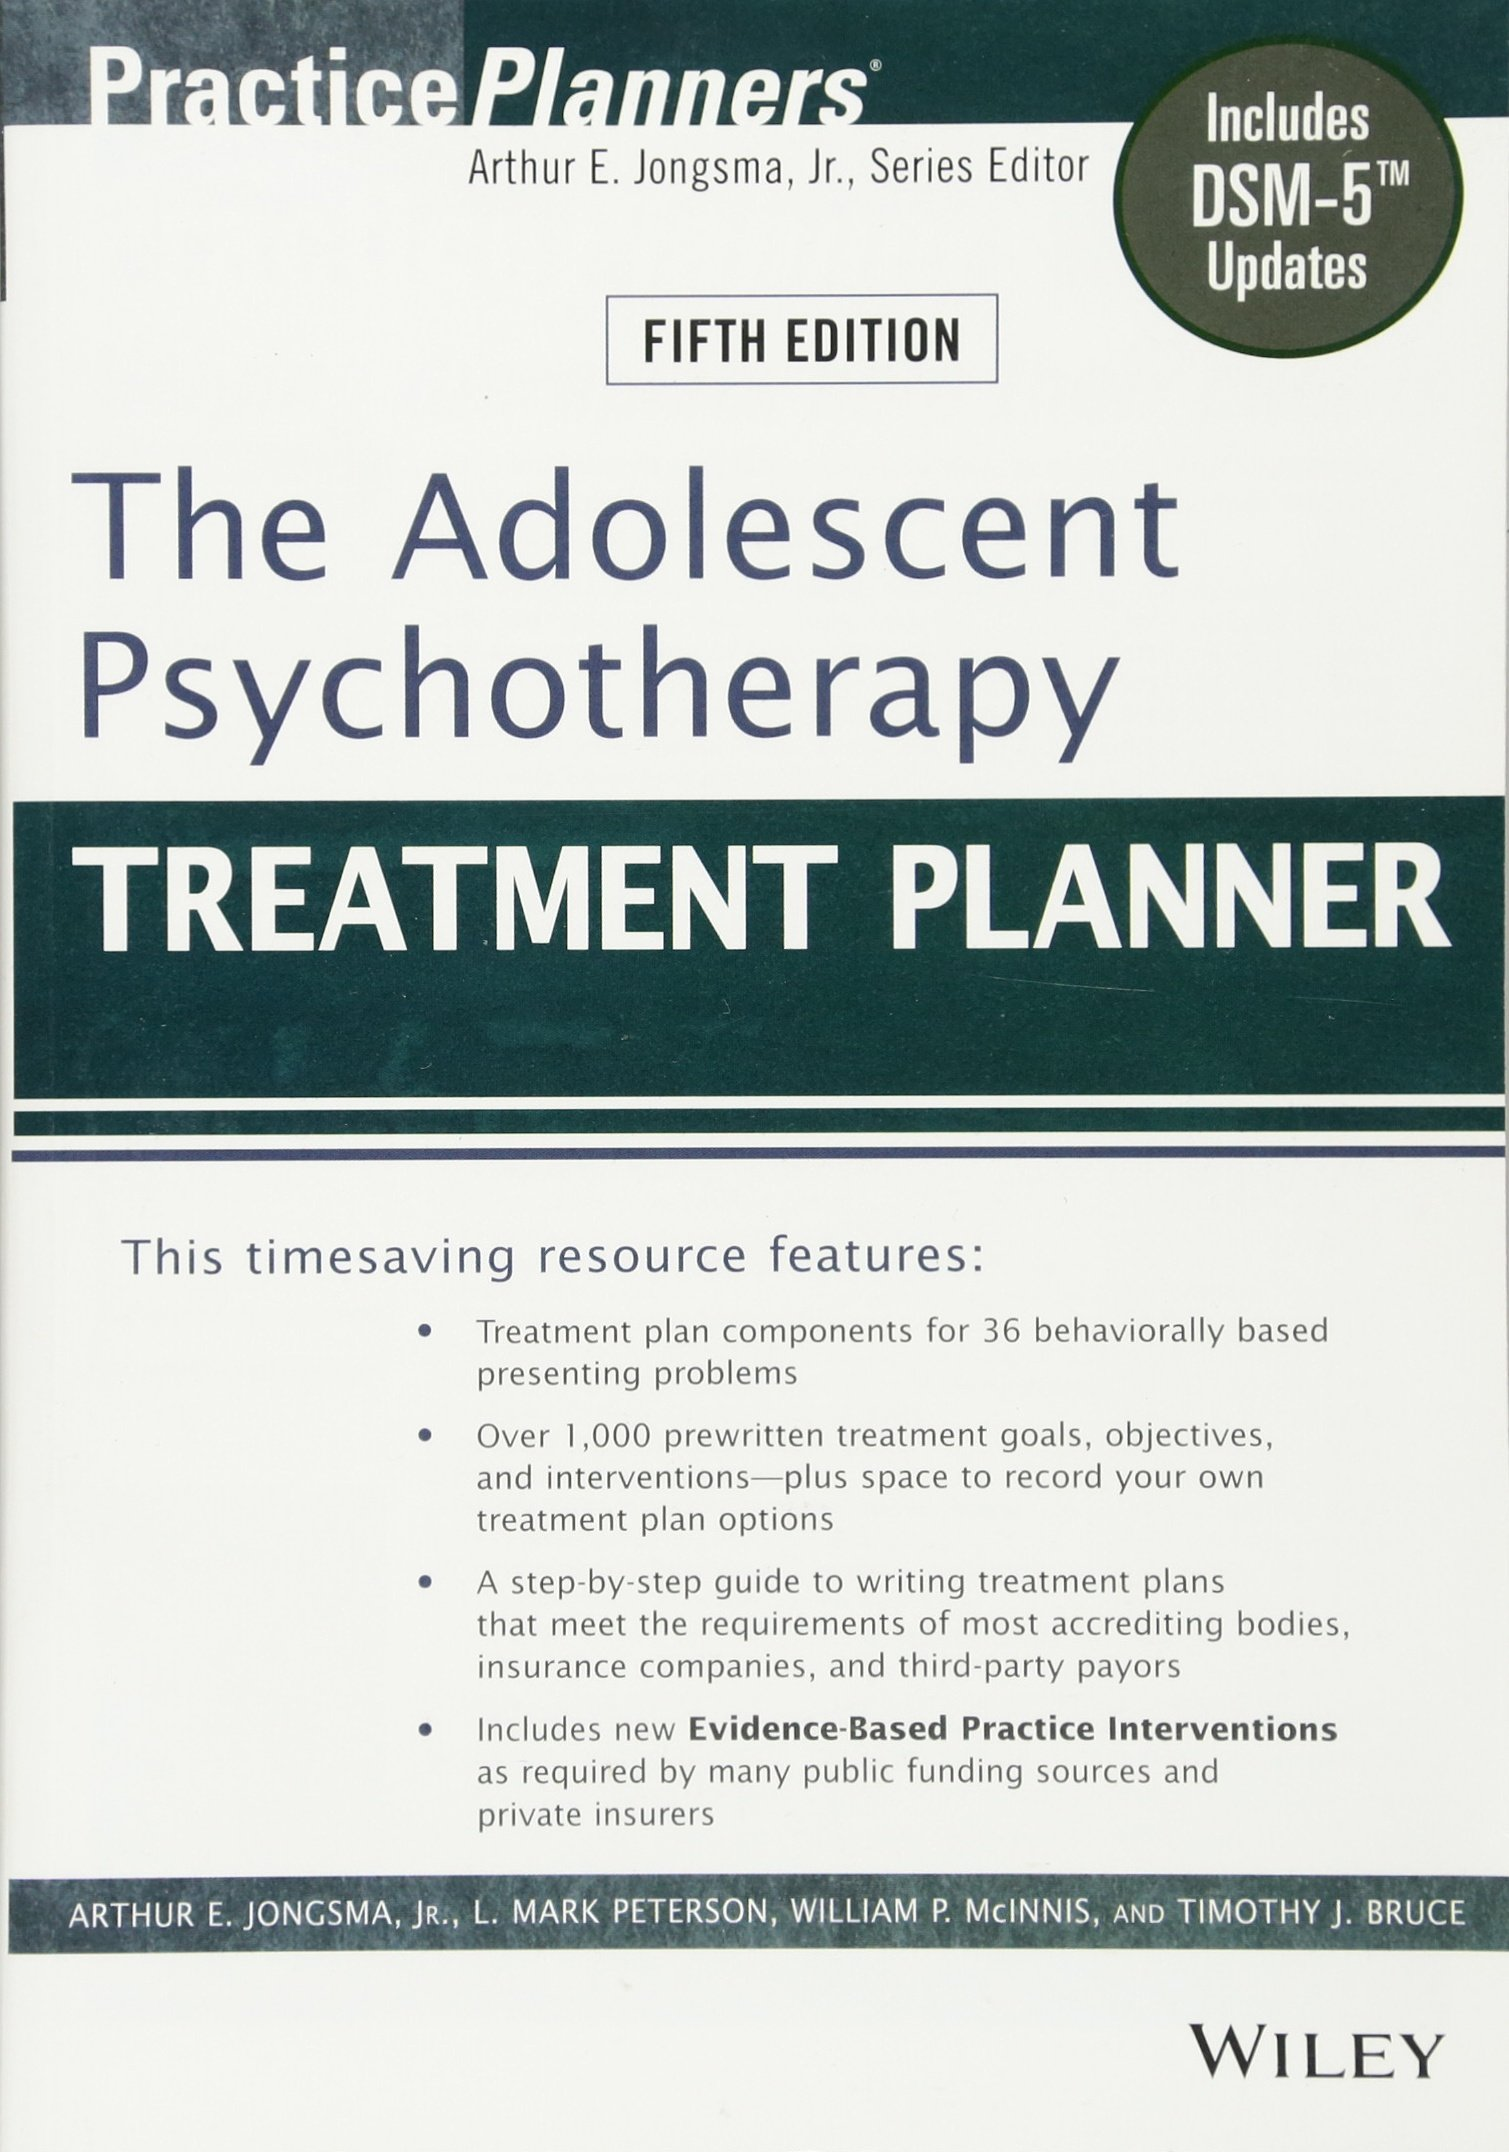 The Adolescent Psychotherapy Treatment Planner: Includes DSM-5 Updates by Wiley